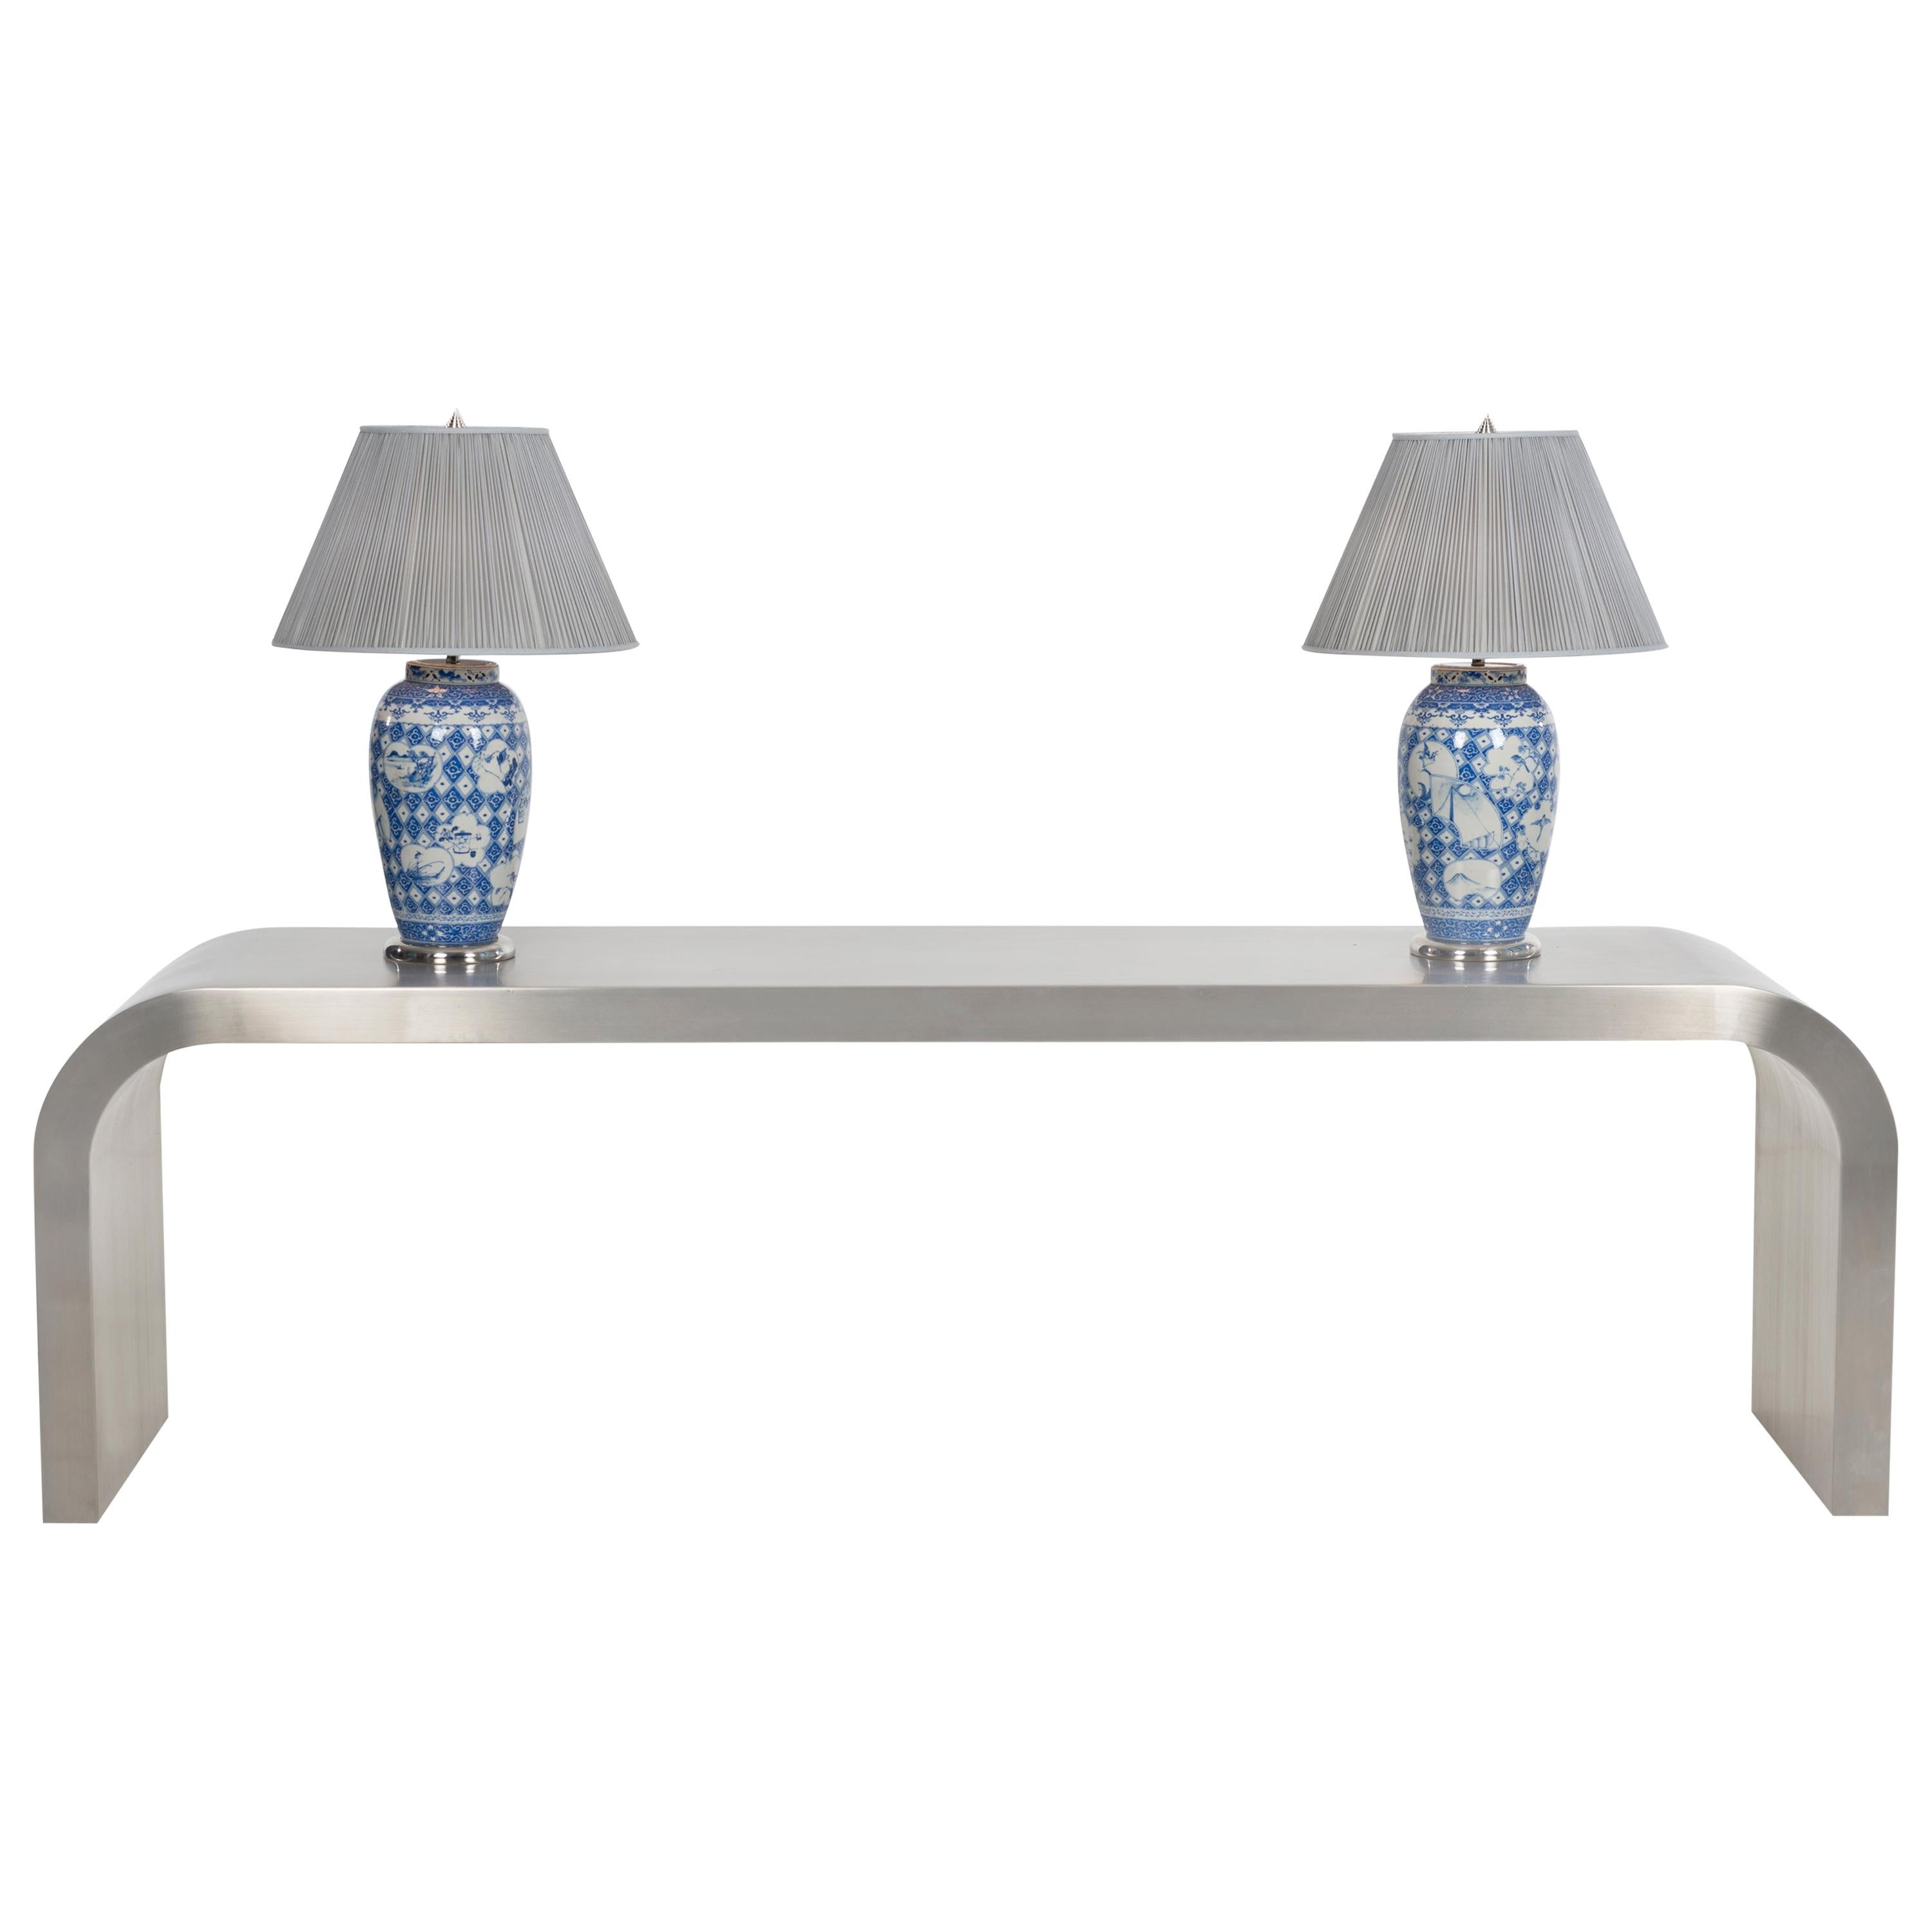 Jay Spectre Custom Console and Pair of Lamps